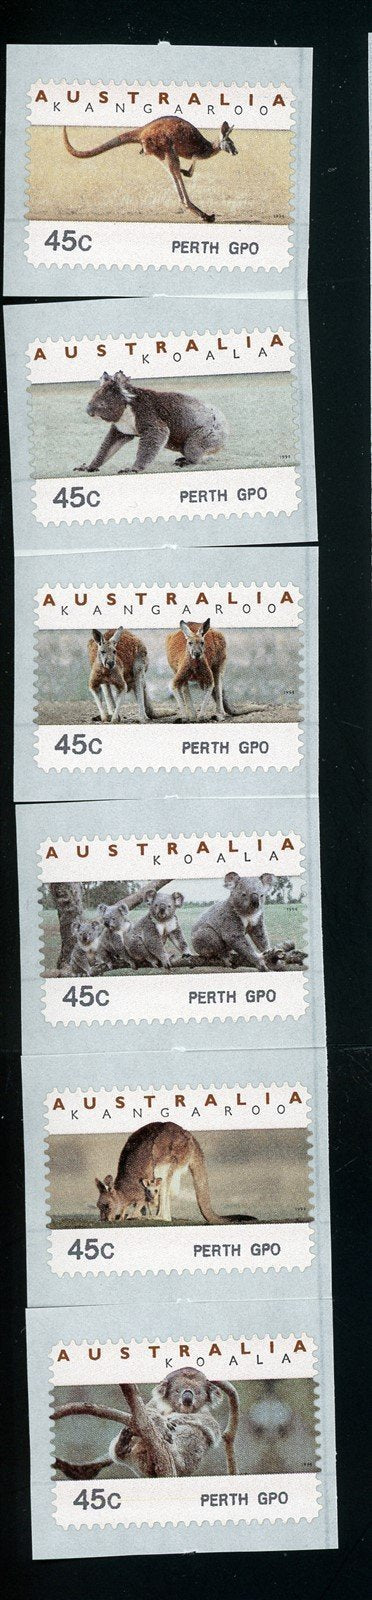 Australia Scott #1295a-8 SA COIL STAMP Animals FAUNA Perth GPO CV$8+